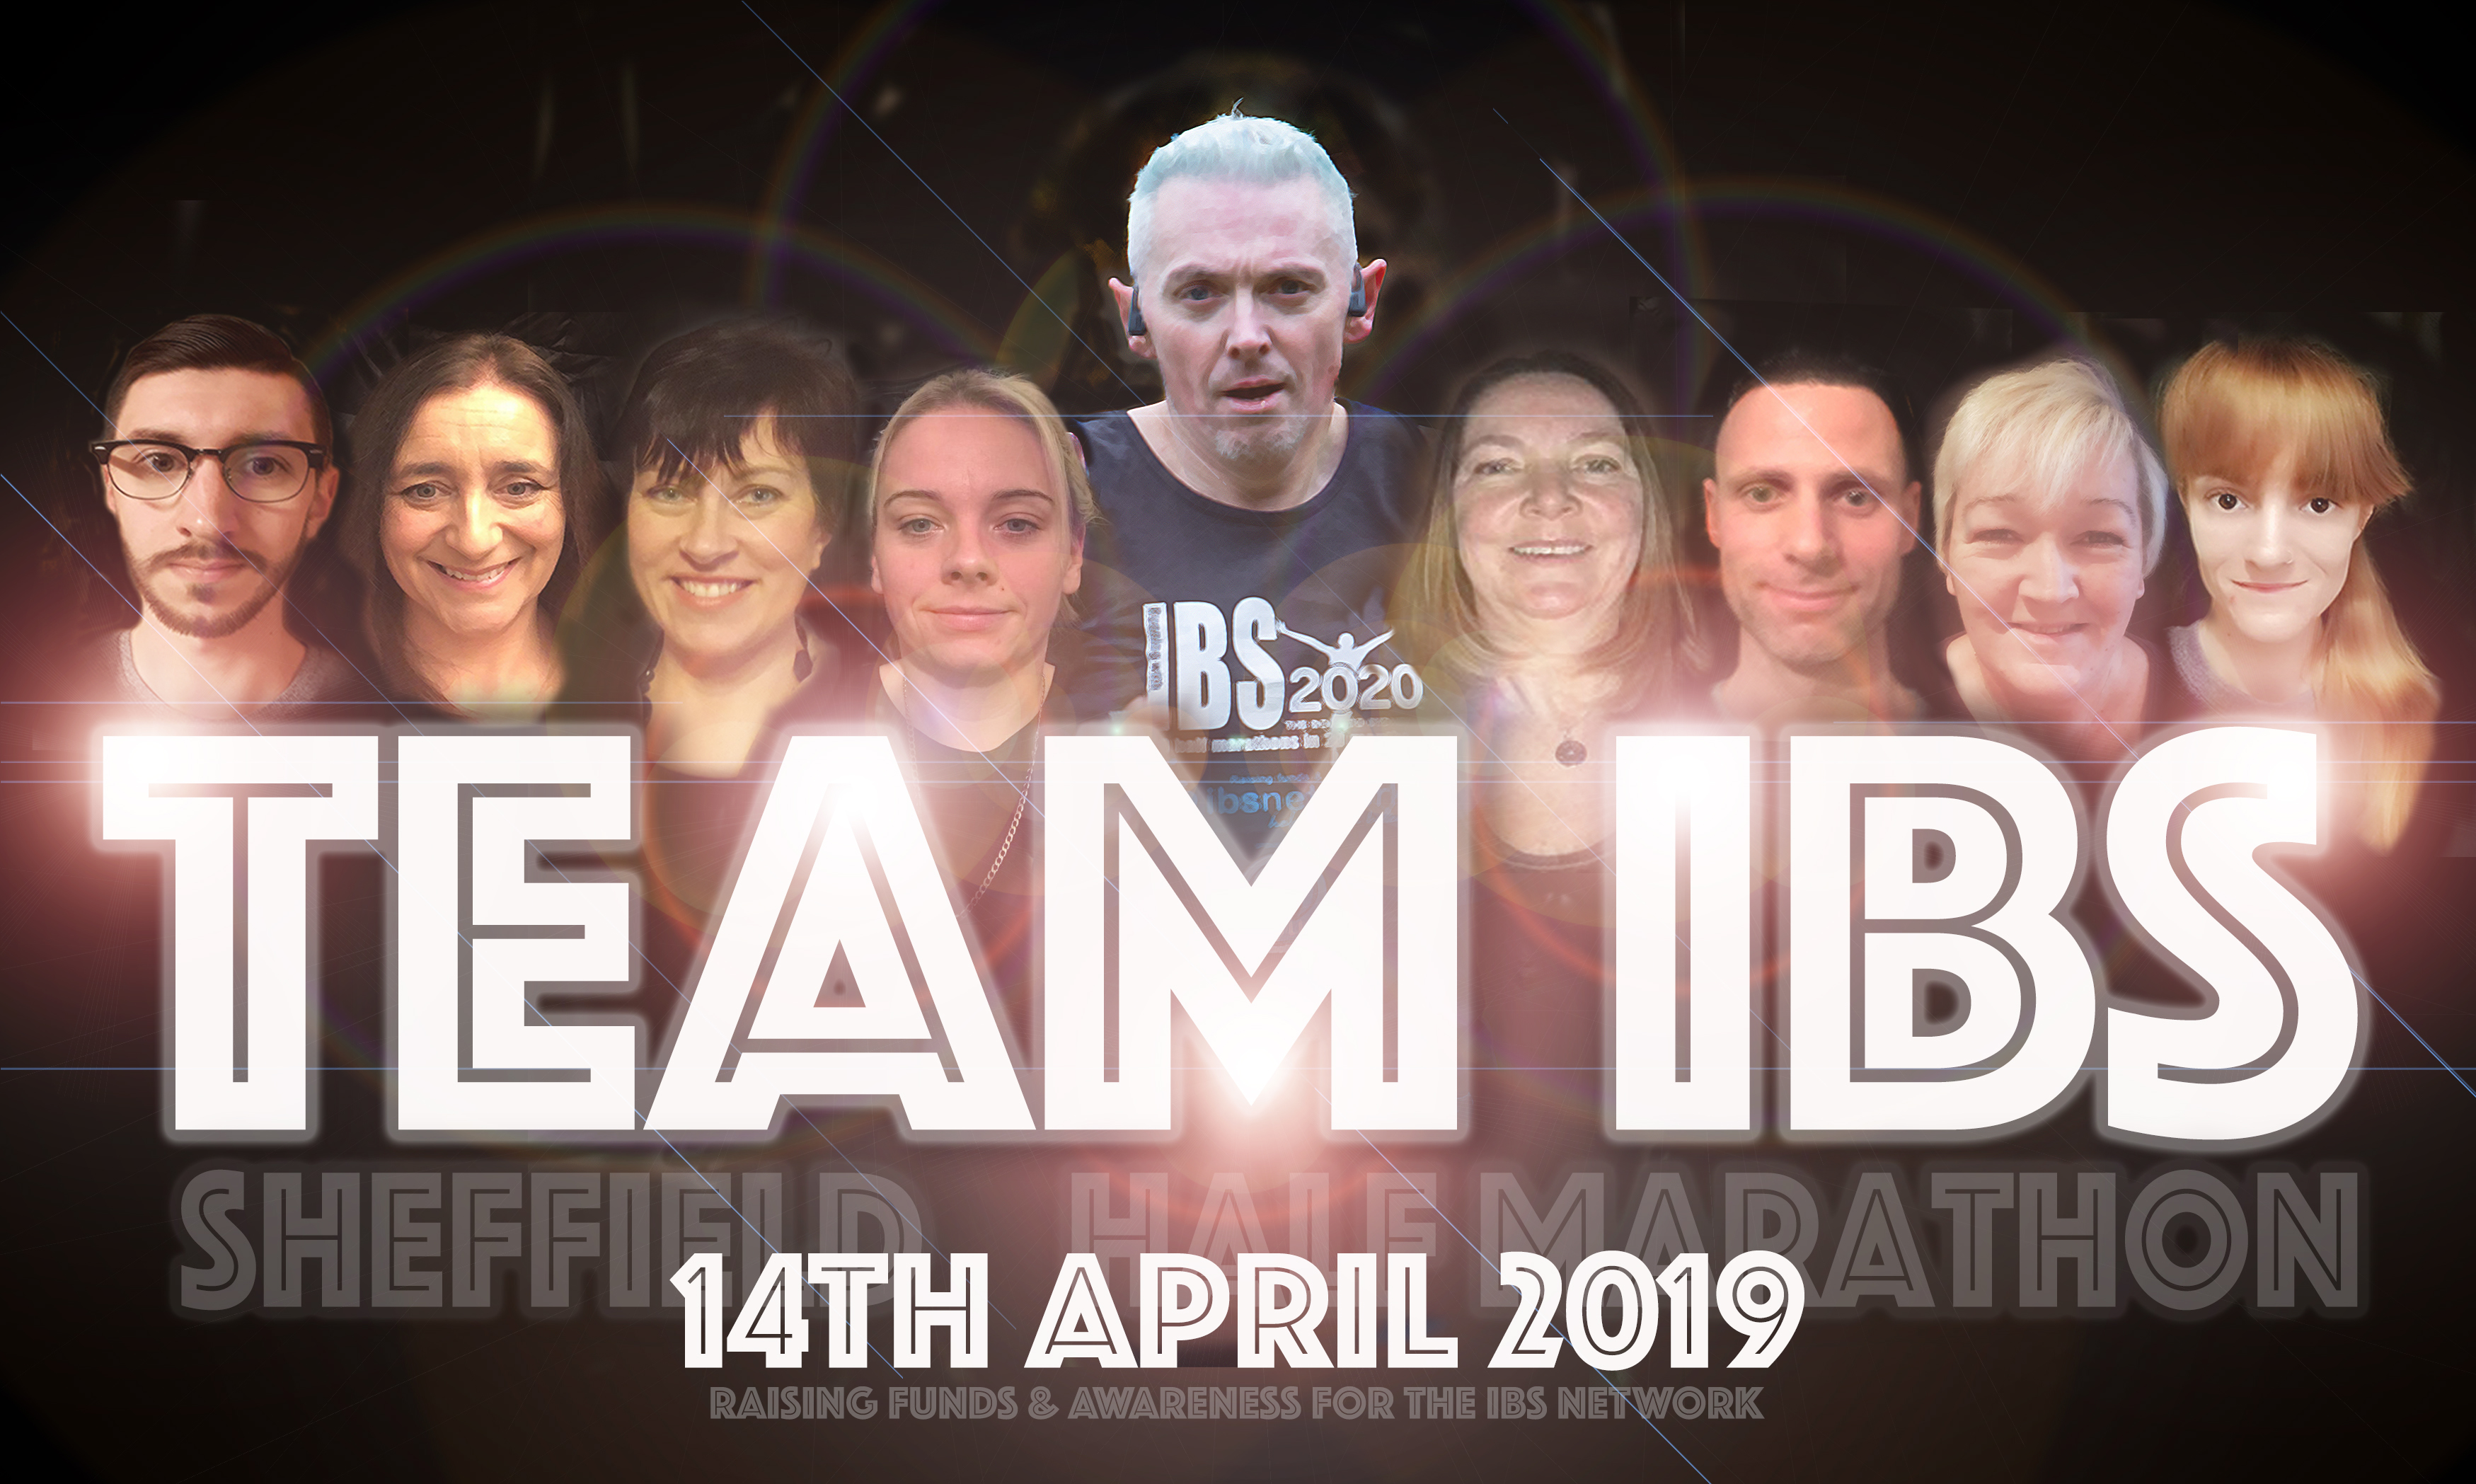 TEAM IBS PHOTOGRAPH